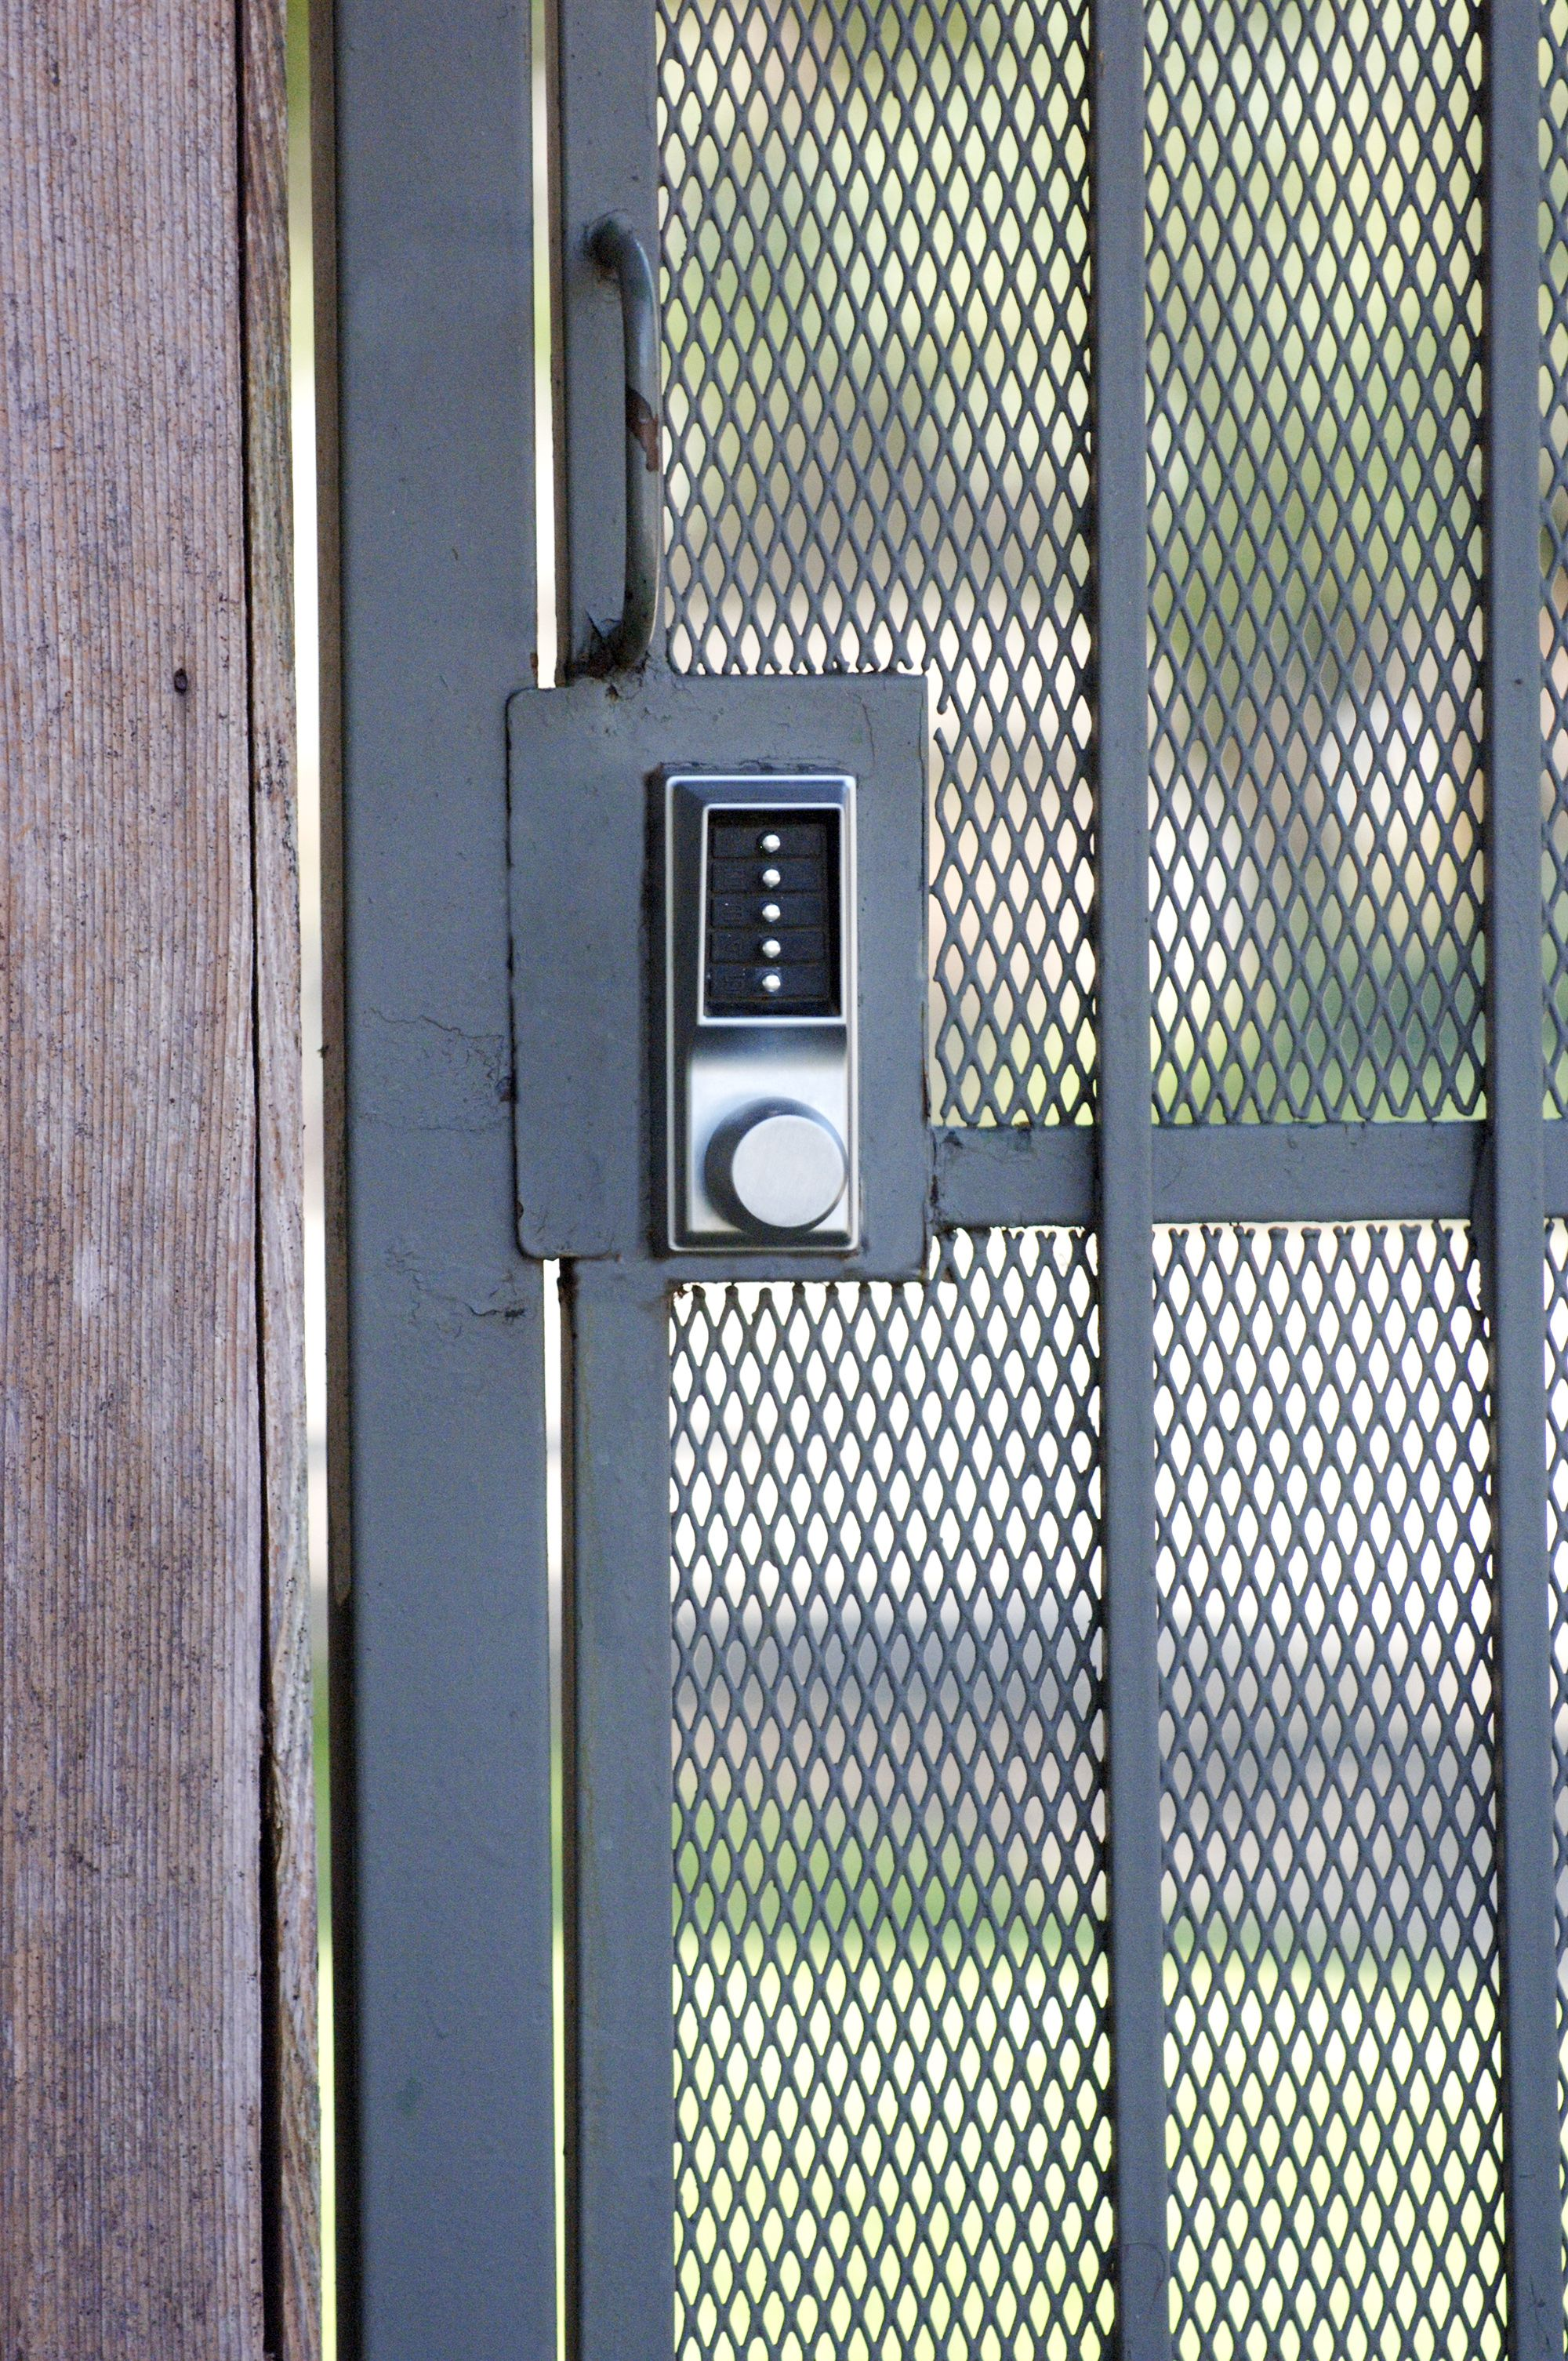 Mechanical Push Button Key Locks Are Great For Security Gates